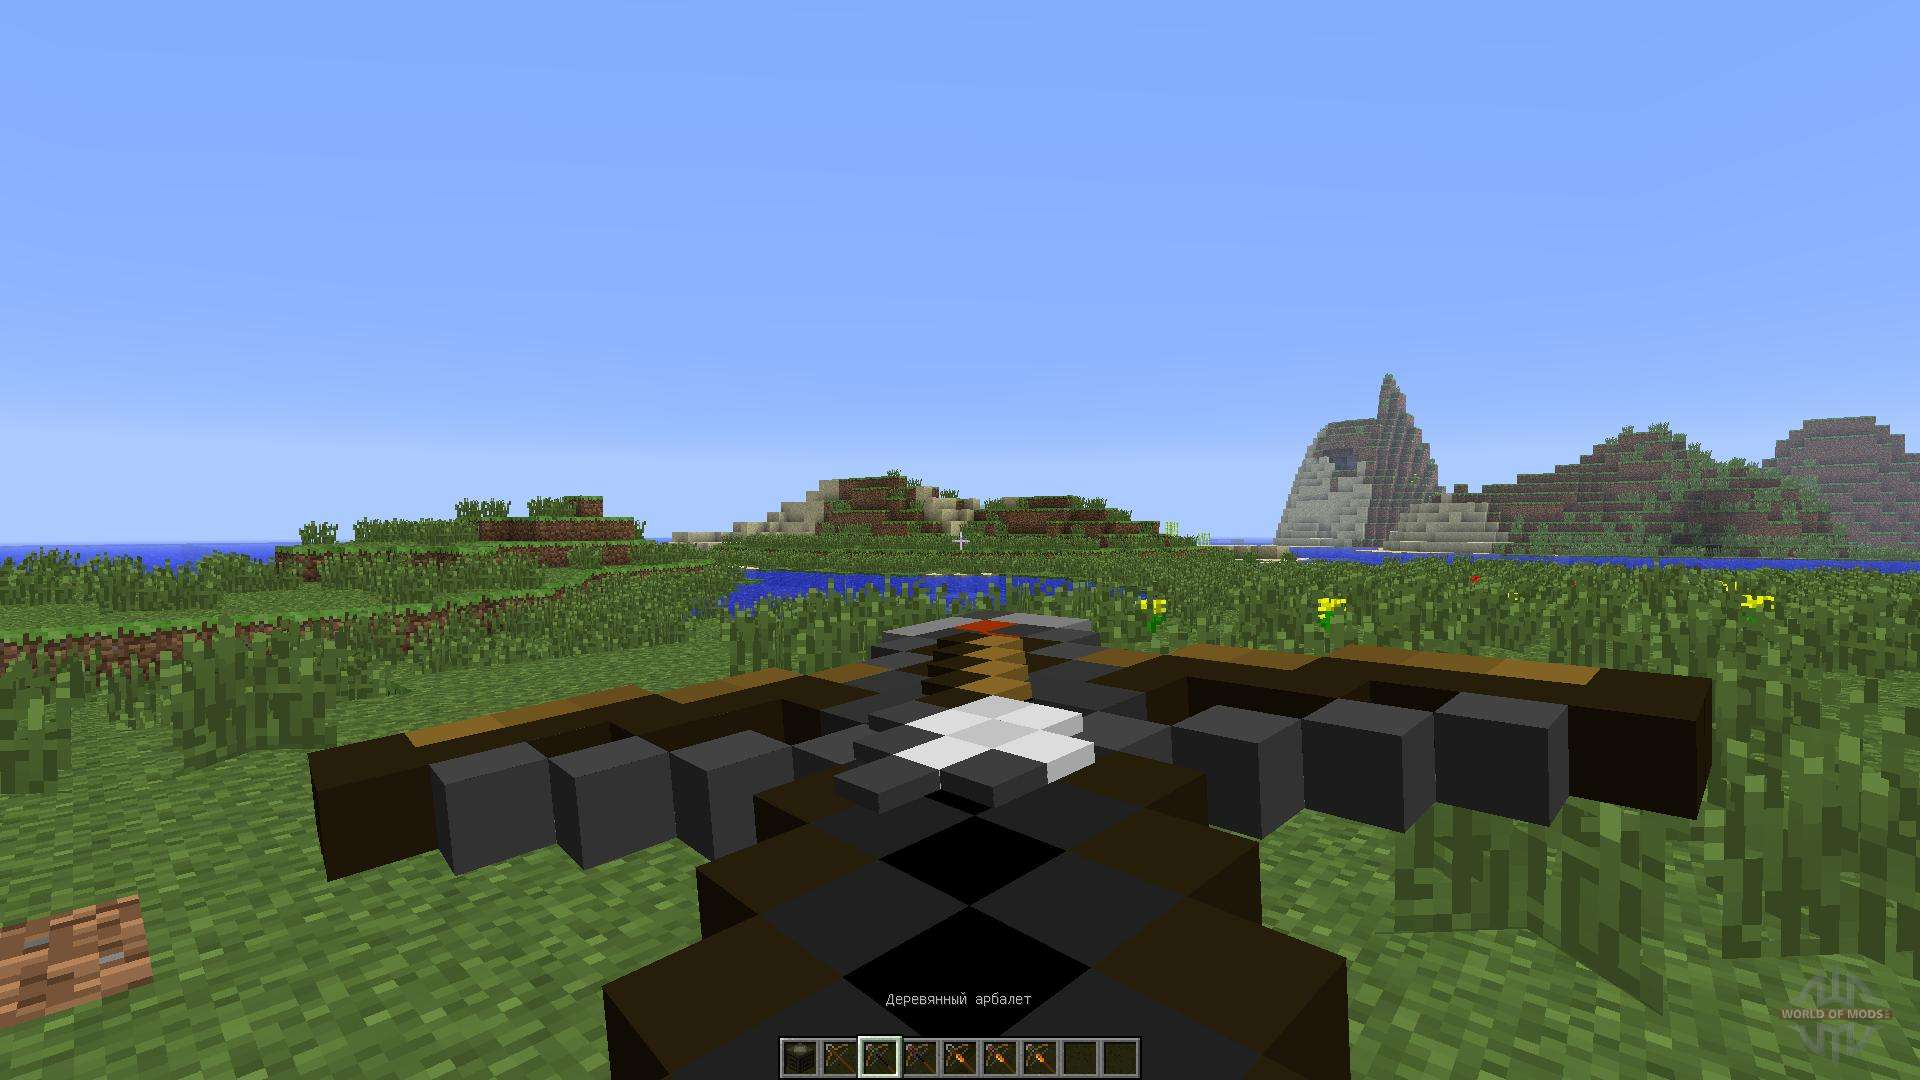 Crossbow 2 [1.6.4] for Minecraft